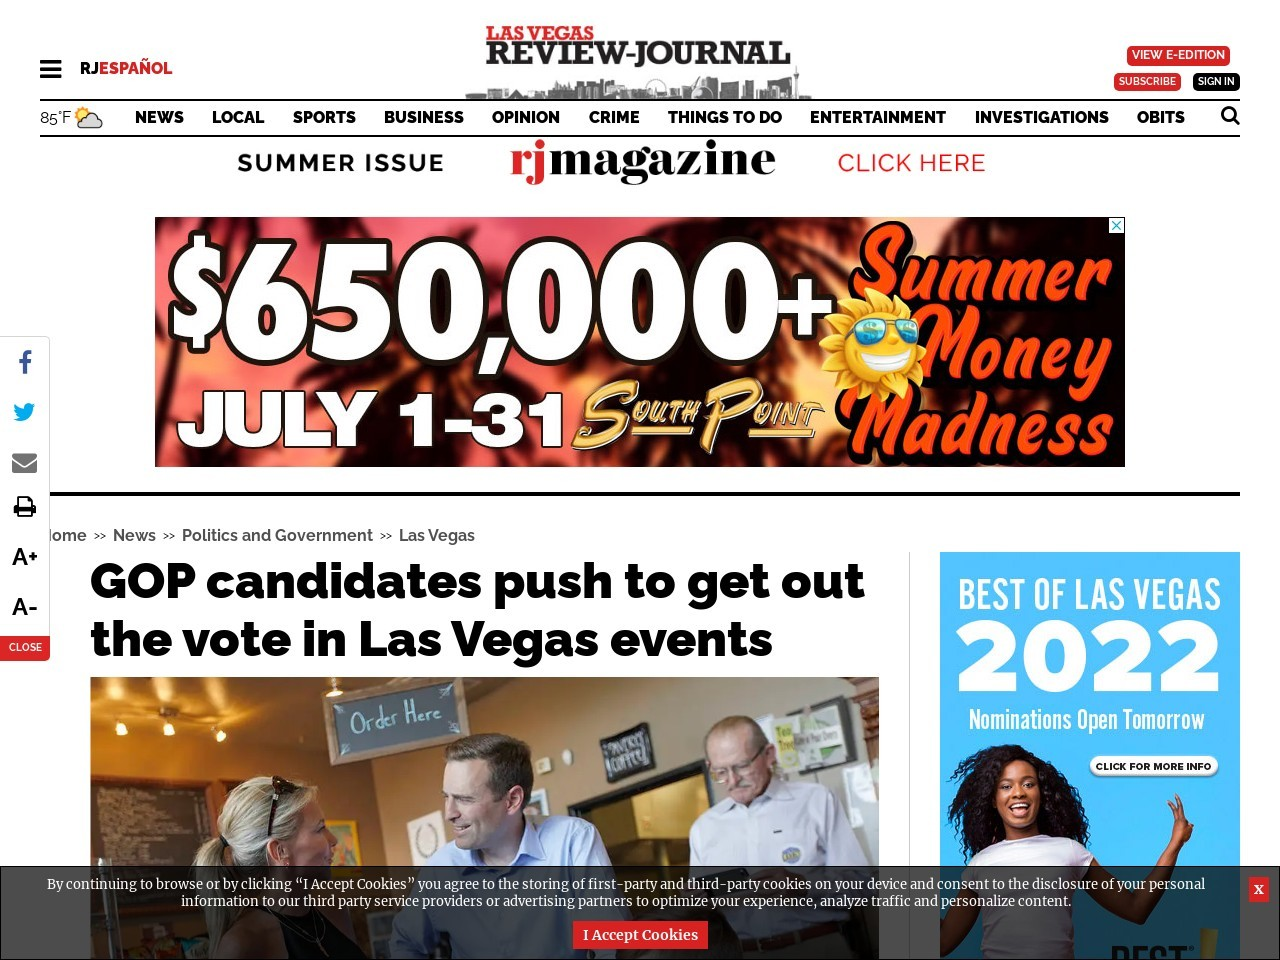 GOP candidates push to get out the vote in Las Vegas events